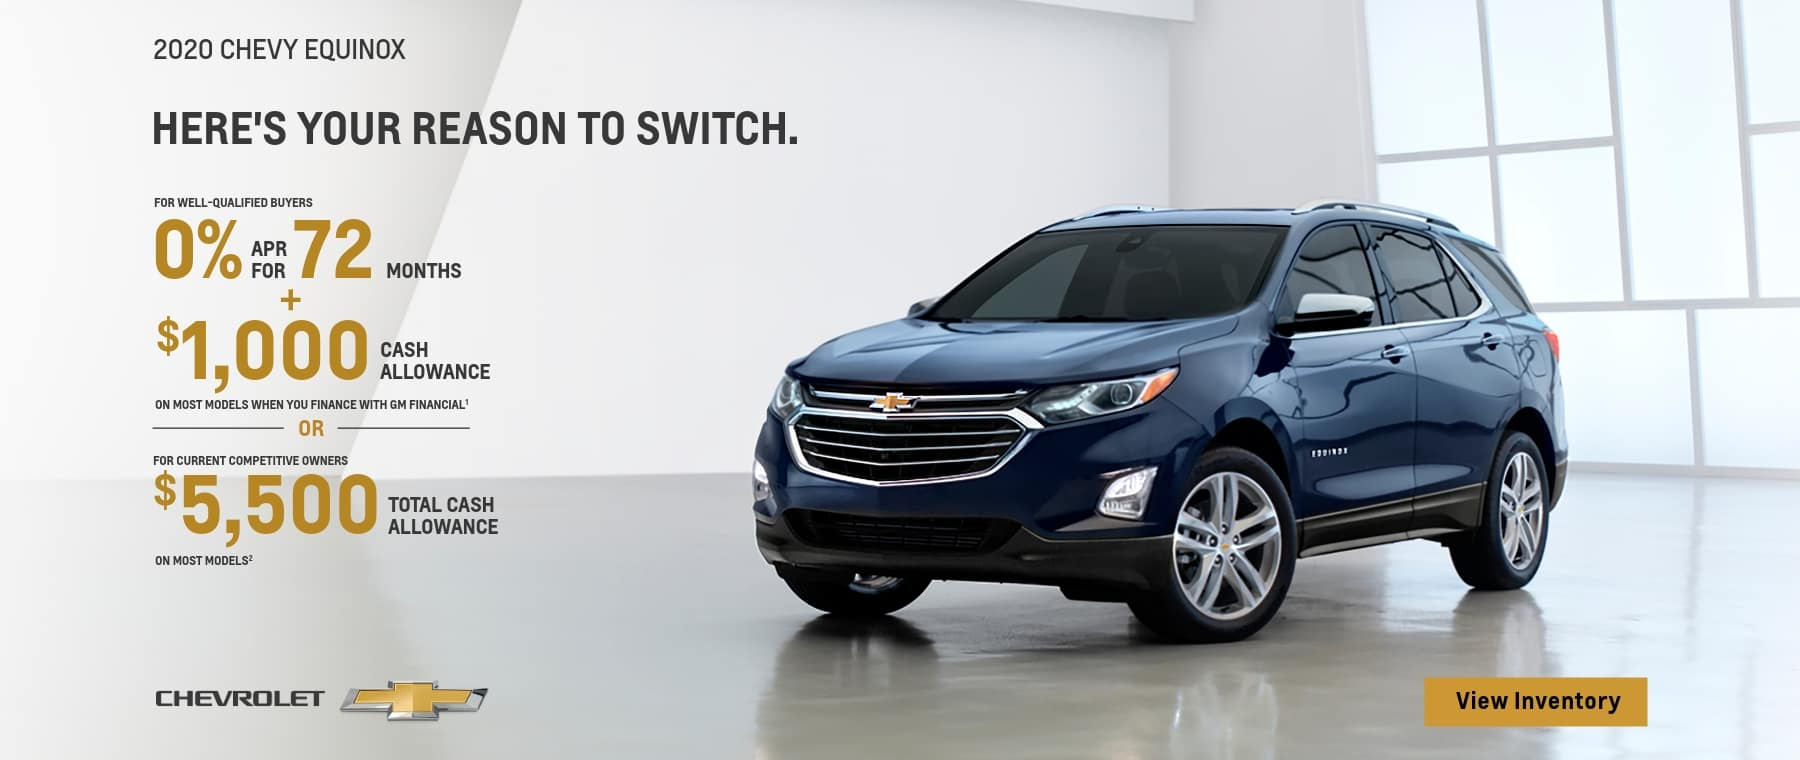 2020 Chevy Equinox - 0% financing for 72 months